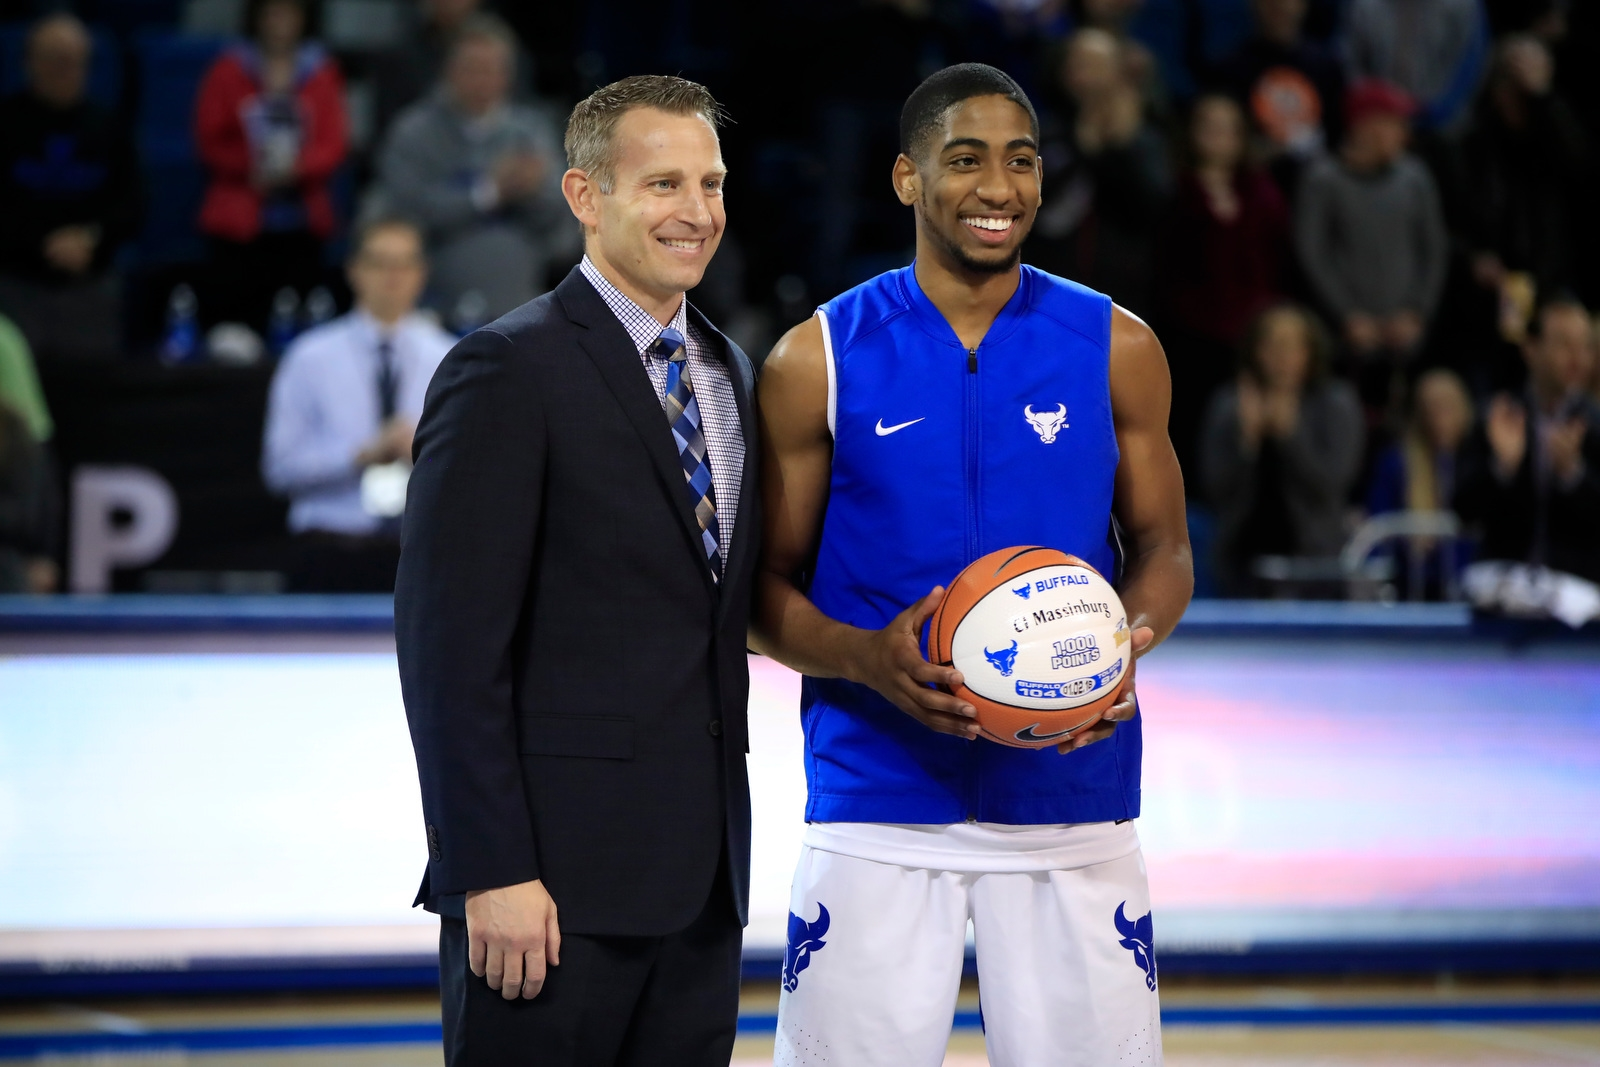 University at Buffalo head coach Nate Oats presents CJ Massinburg a ball commemorating his 1,000th point prior to playing Miami at Alumni Arena on Saturday, Jan. 13, 2018.